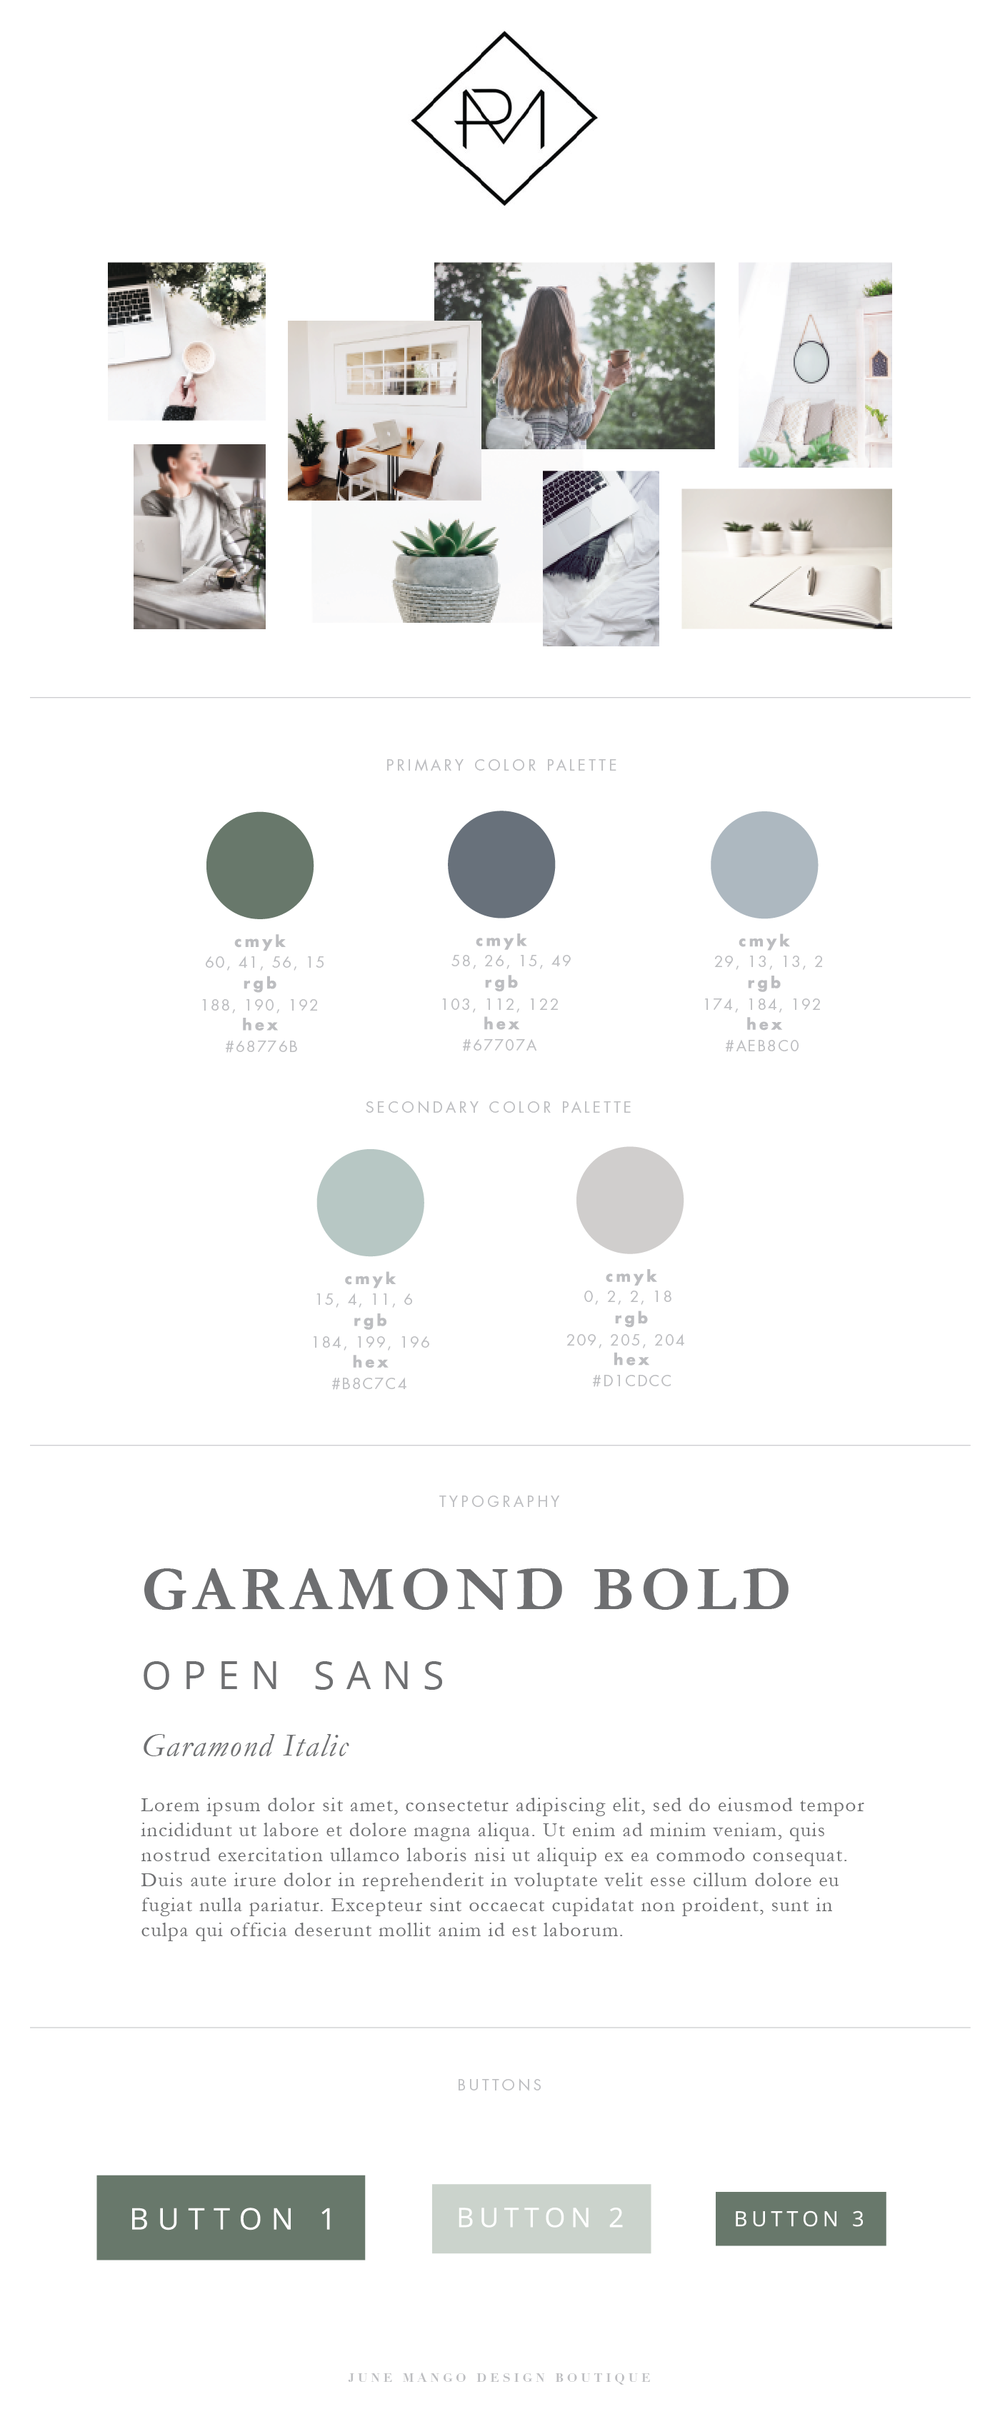 Style-guide-for-your-website-11.png